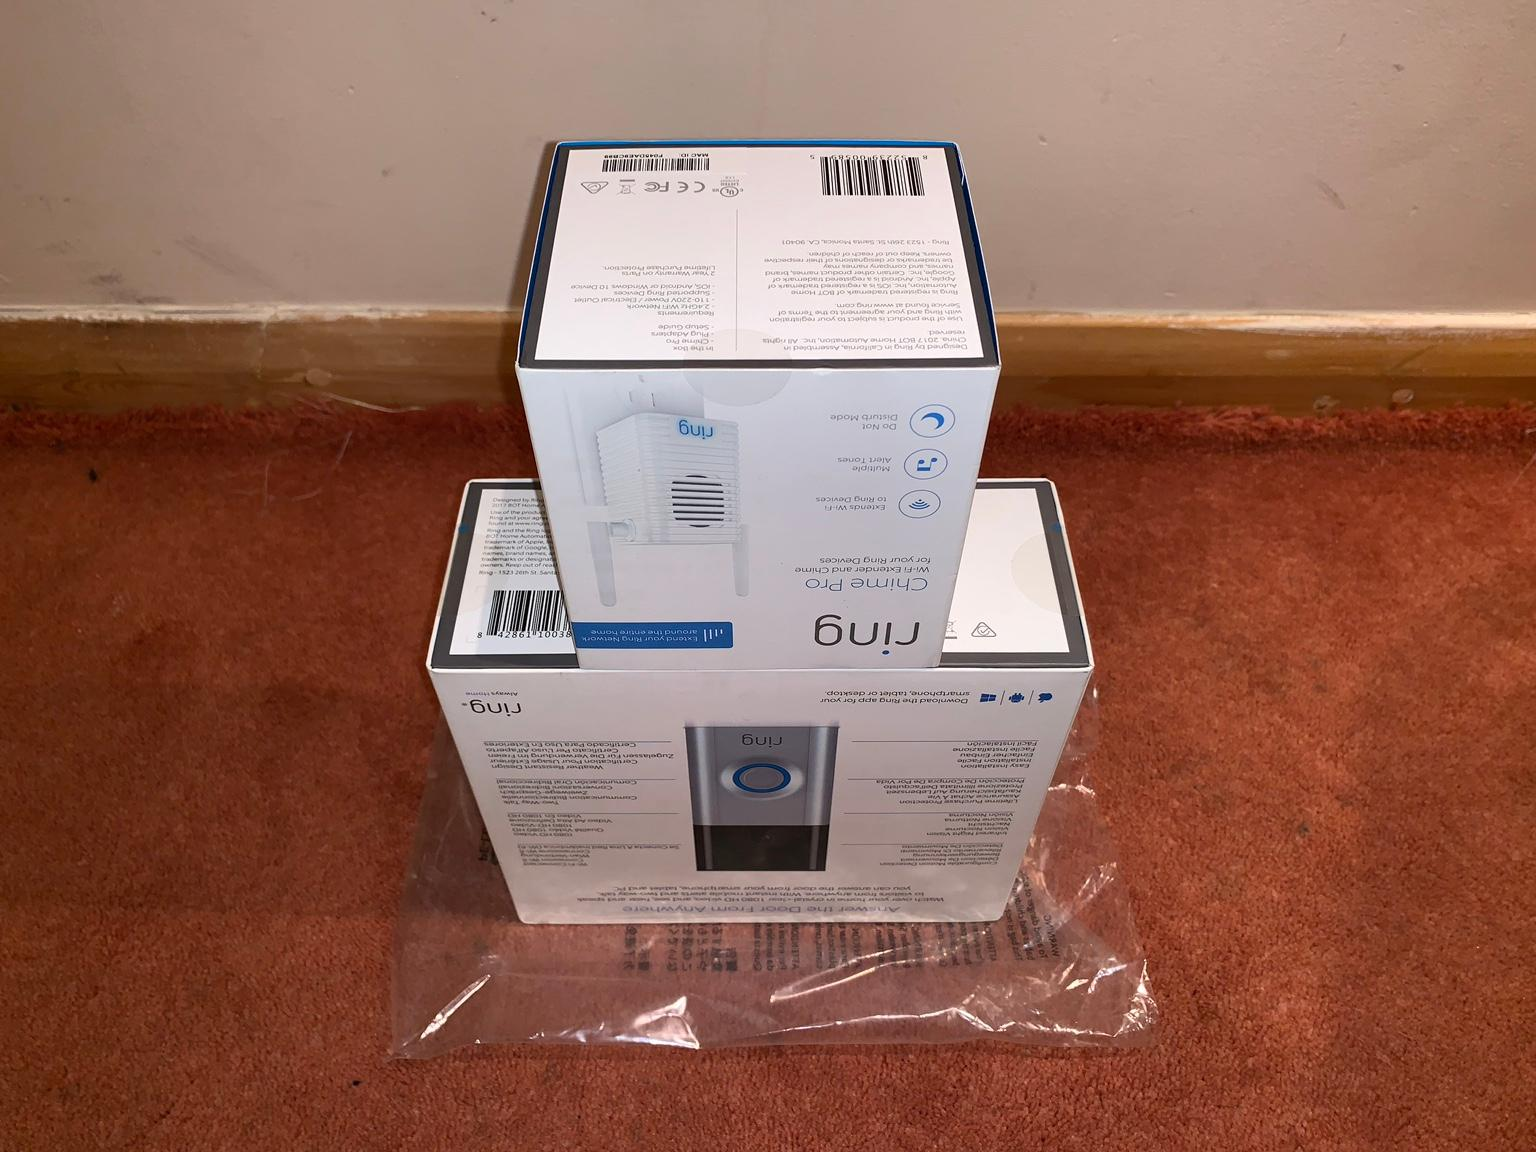 Ring Video Doorbell 2 & Chime Pro - Sealed